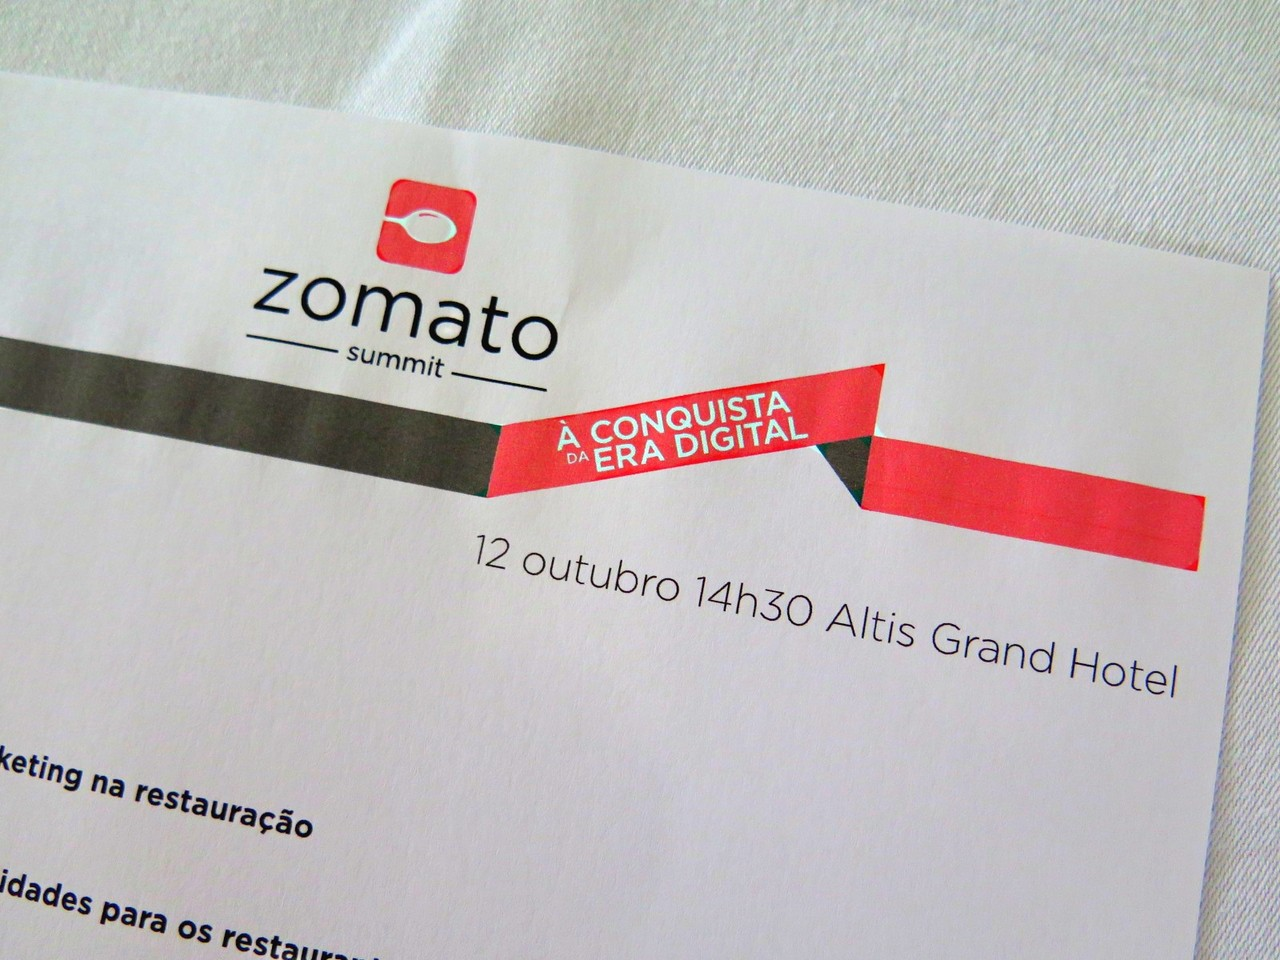 Zomato Summit